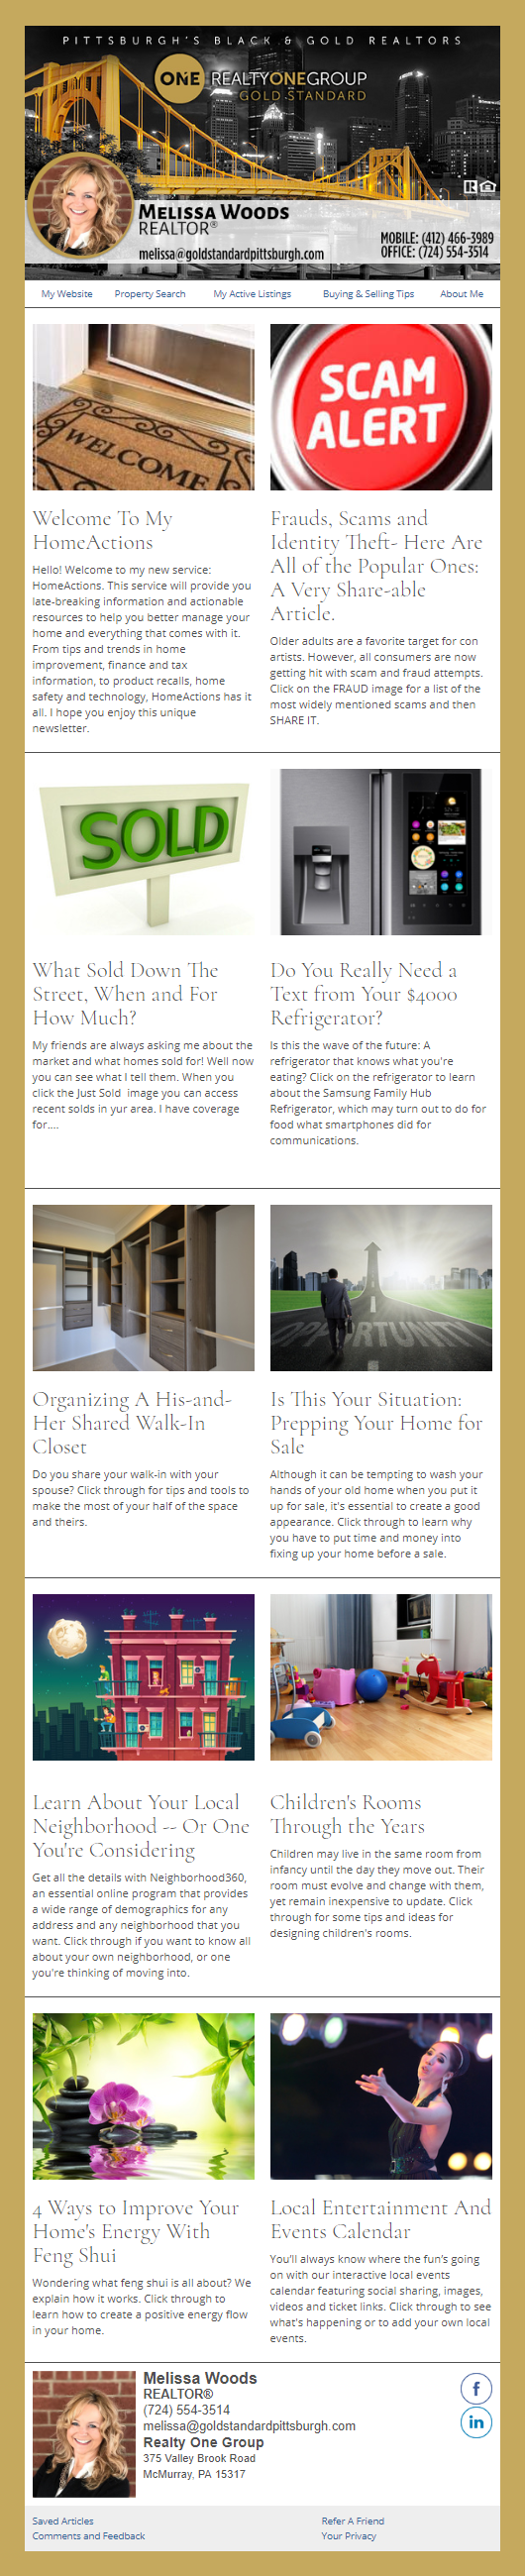 Realty One - HomeActions Sample Email Newsletter